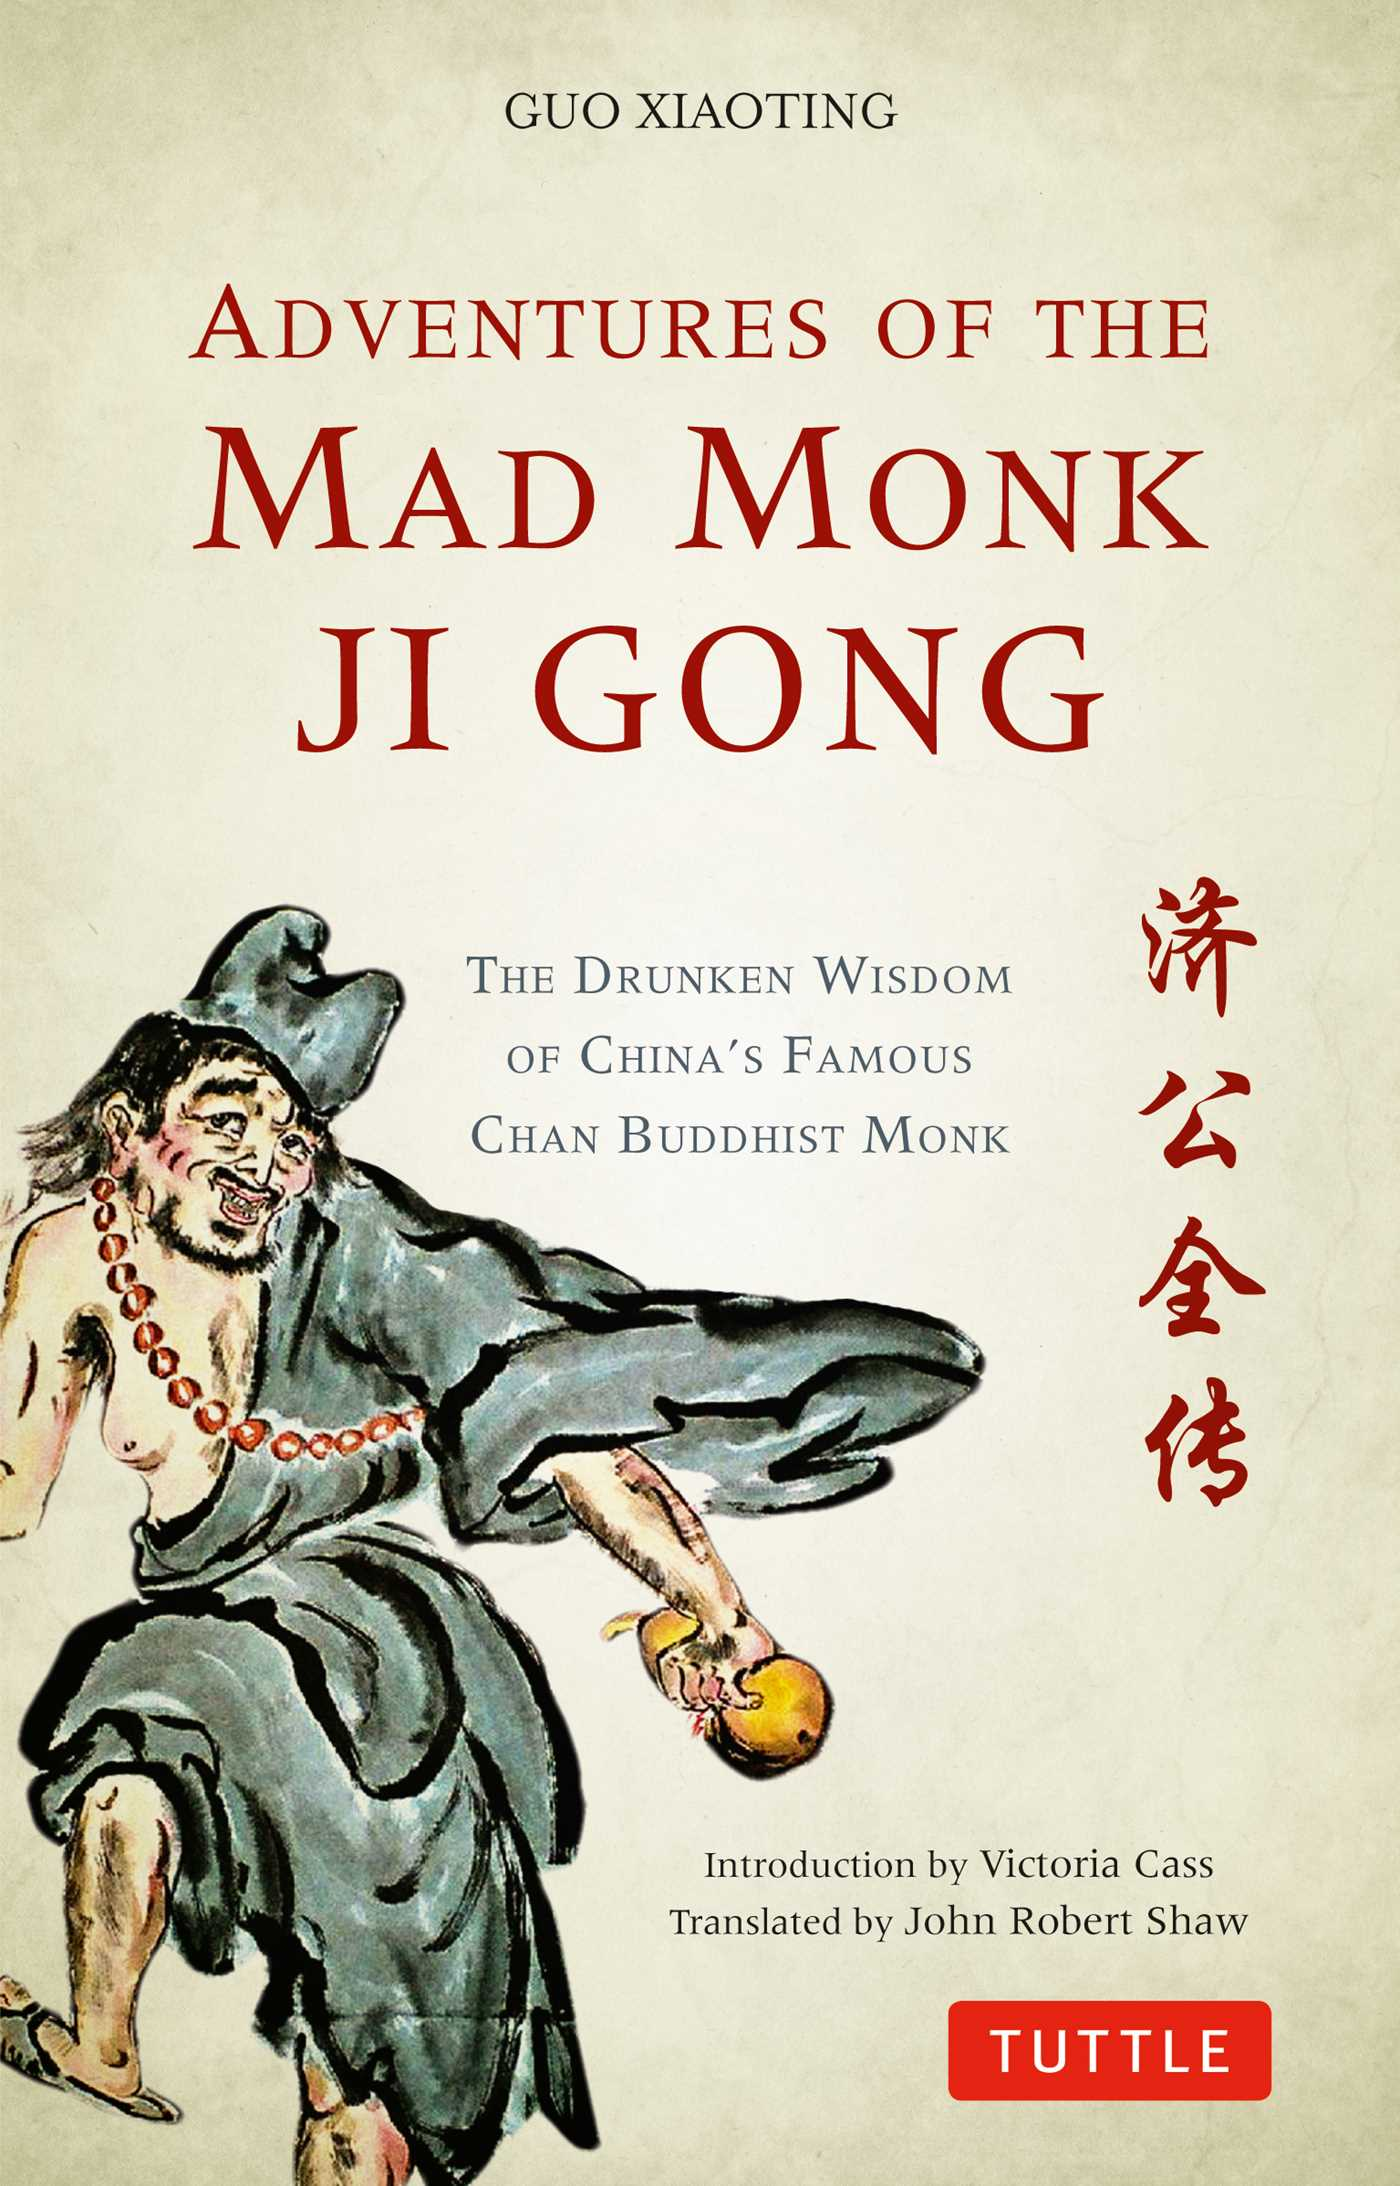 Adventures of the mad monk ji gong 9780804849142 hr